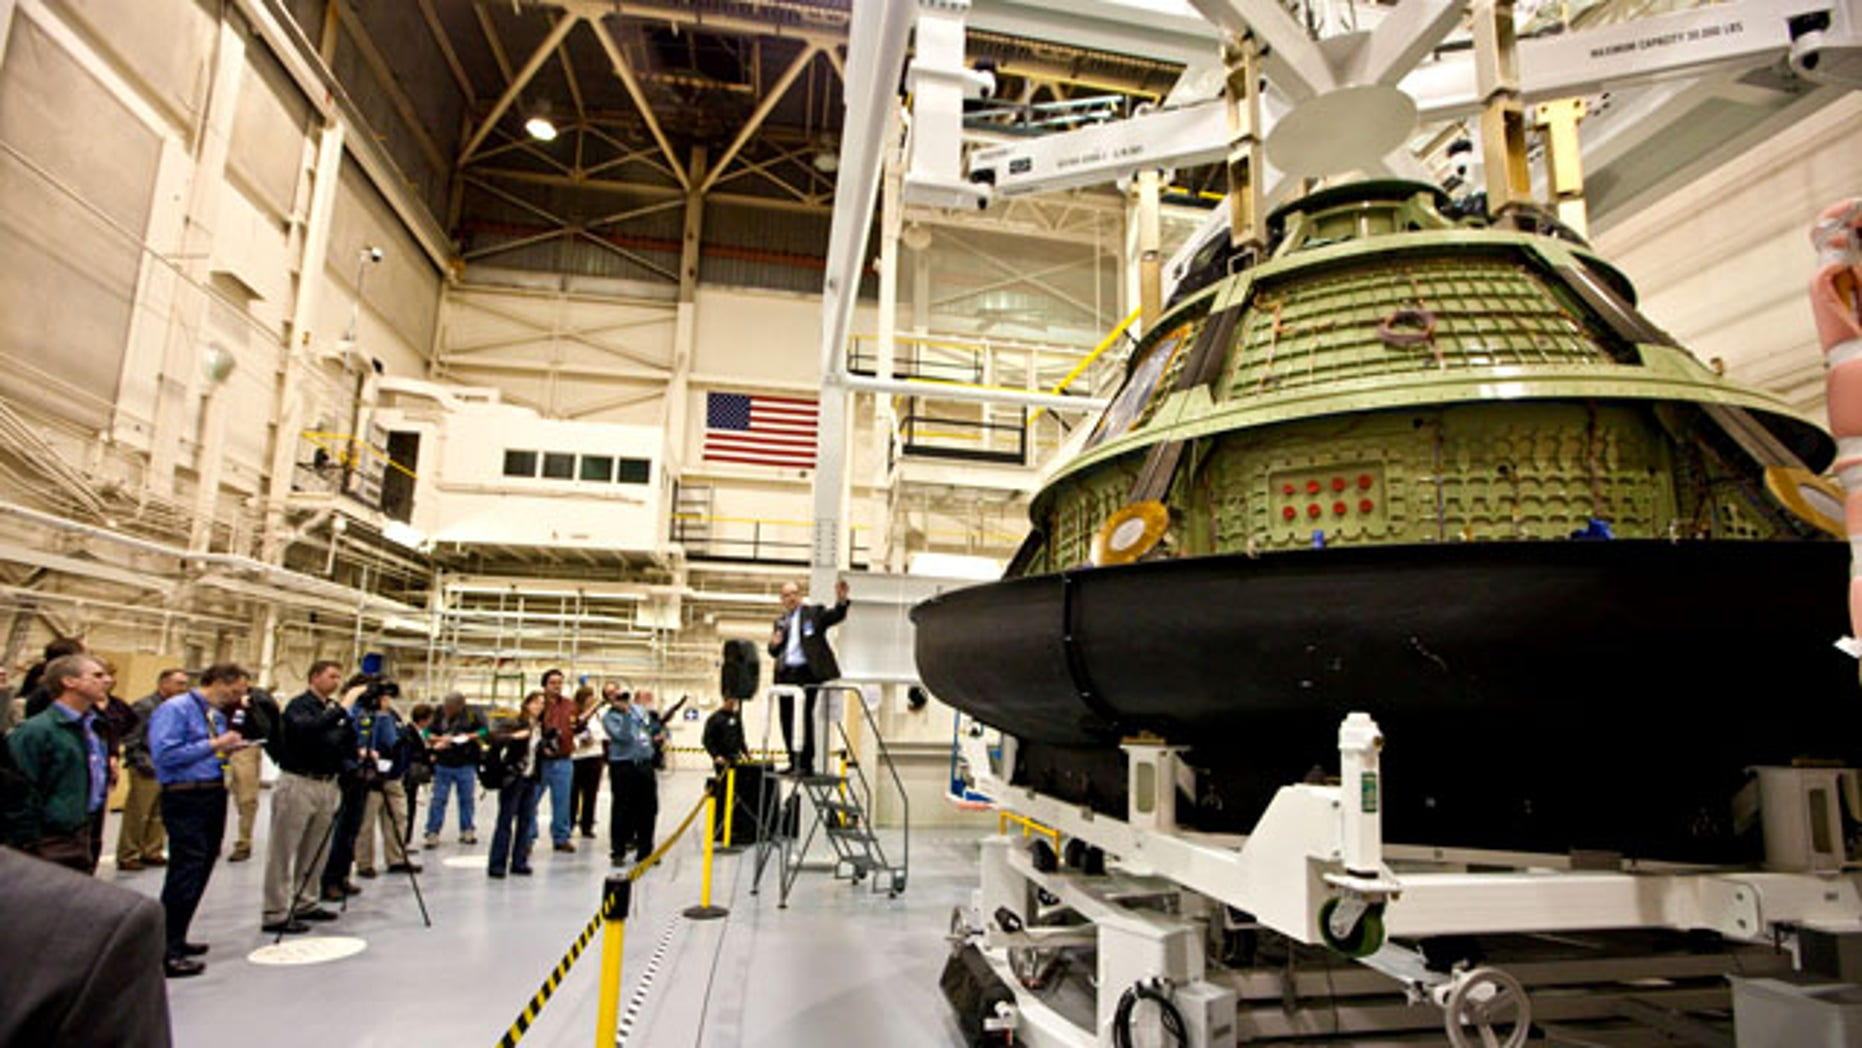 Jim Bray, Orion Crew and Service Module Director, explains how the Orion crew module will be integrated with the backshell and heat shield structure prior to acoustic and vibration testing. The spacecraft is being prepared to undergo rigorous acoustic and vibration testing to validate Orions ability to endure the harsh environments of deep space.